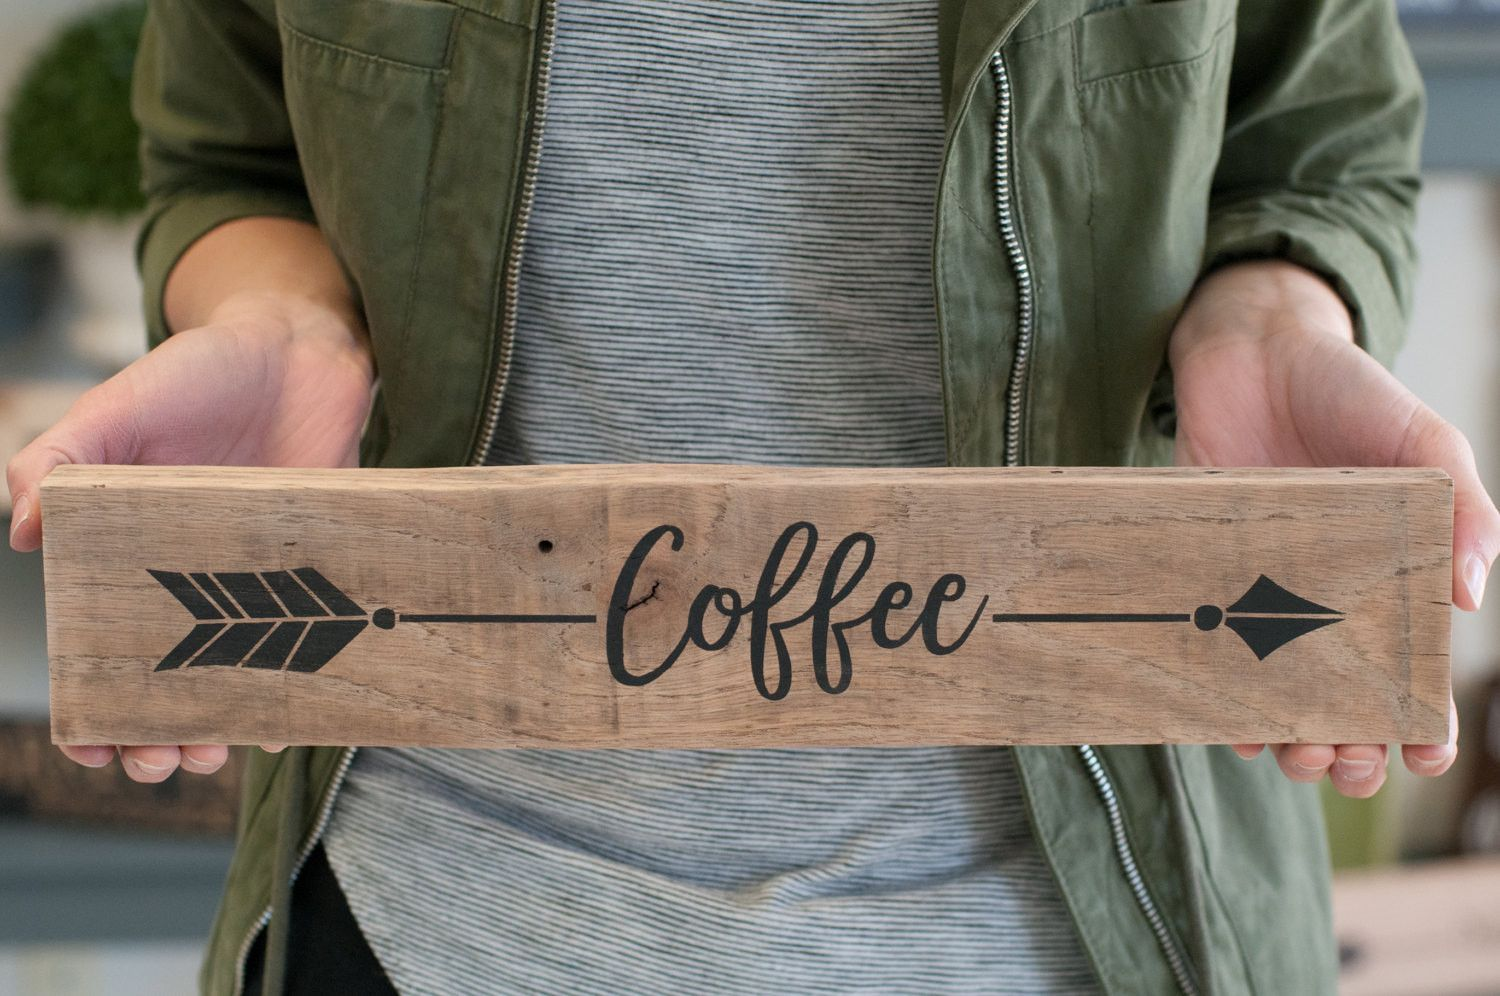 Reclaimed Wood Arrow Coffee Home Decor Sign Gift For Her Coffee Kitchen Decor Coffee Sign With Images Coffee Decor Kitchen Coffee Kitchen Home Decor Signs